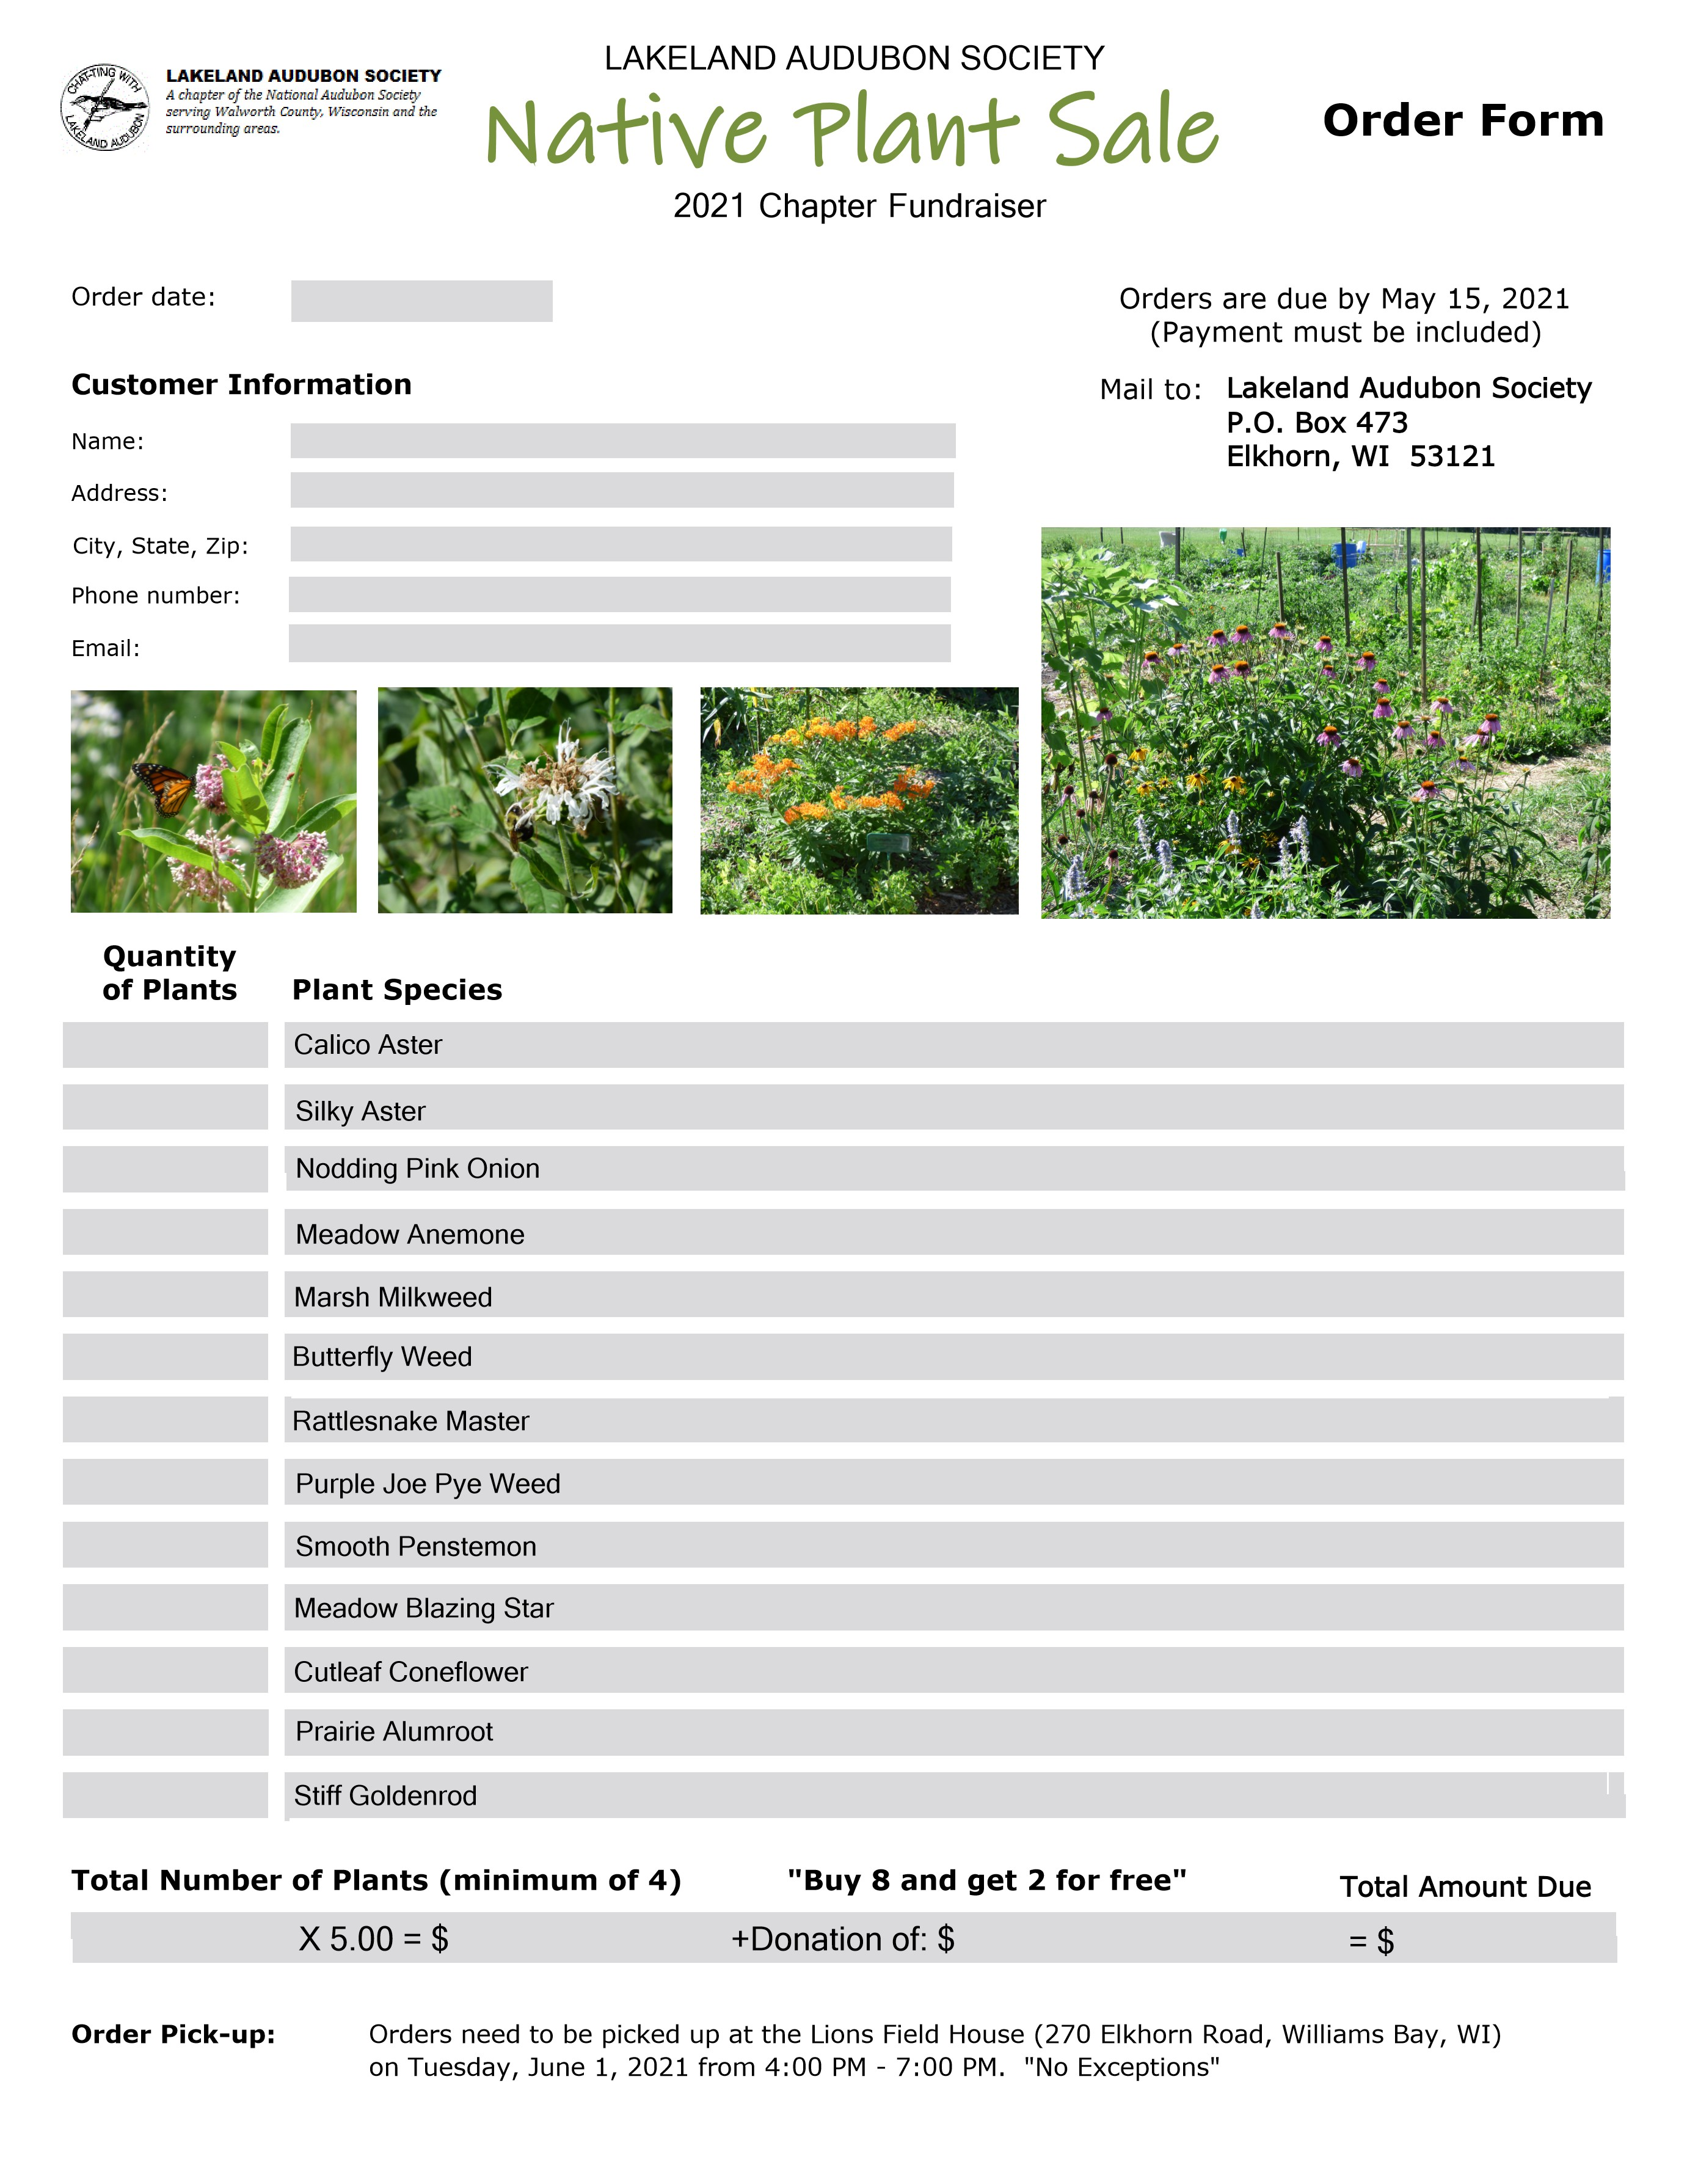 LAS Native Plant Order Form-2021-1